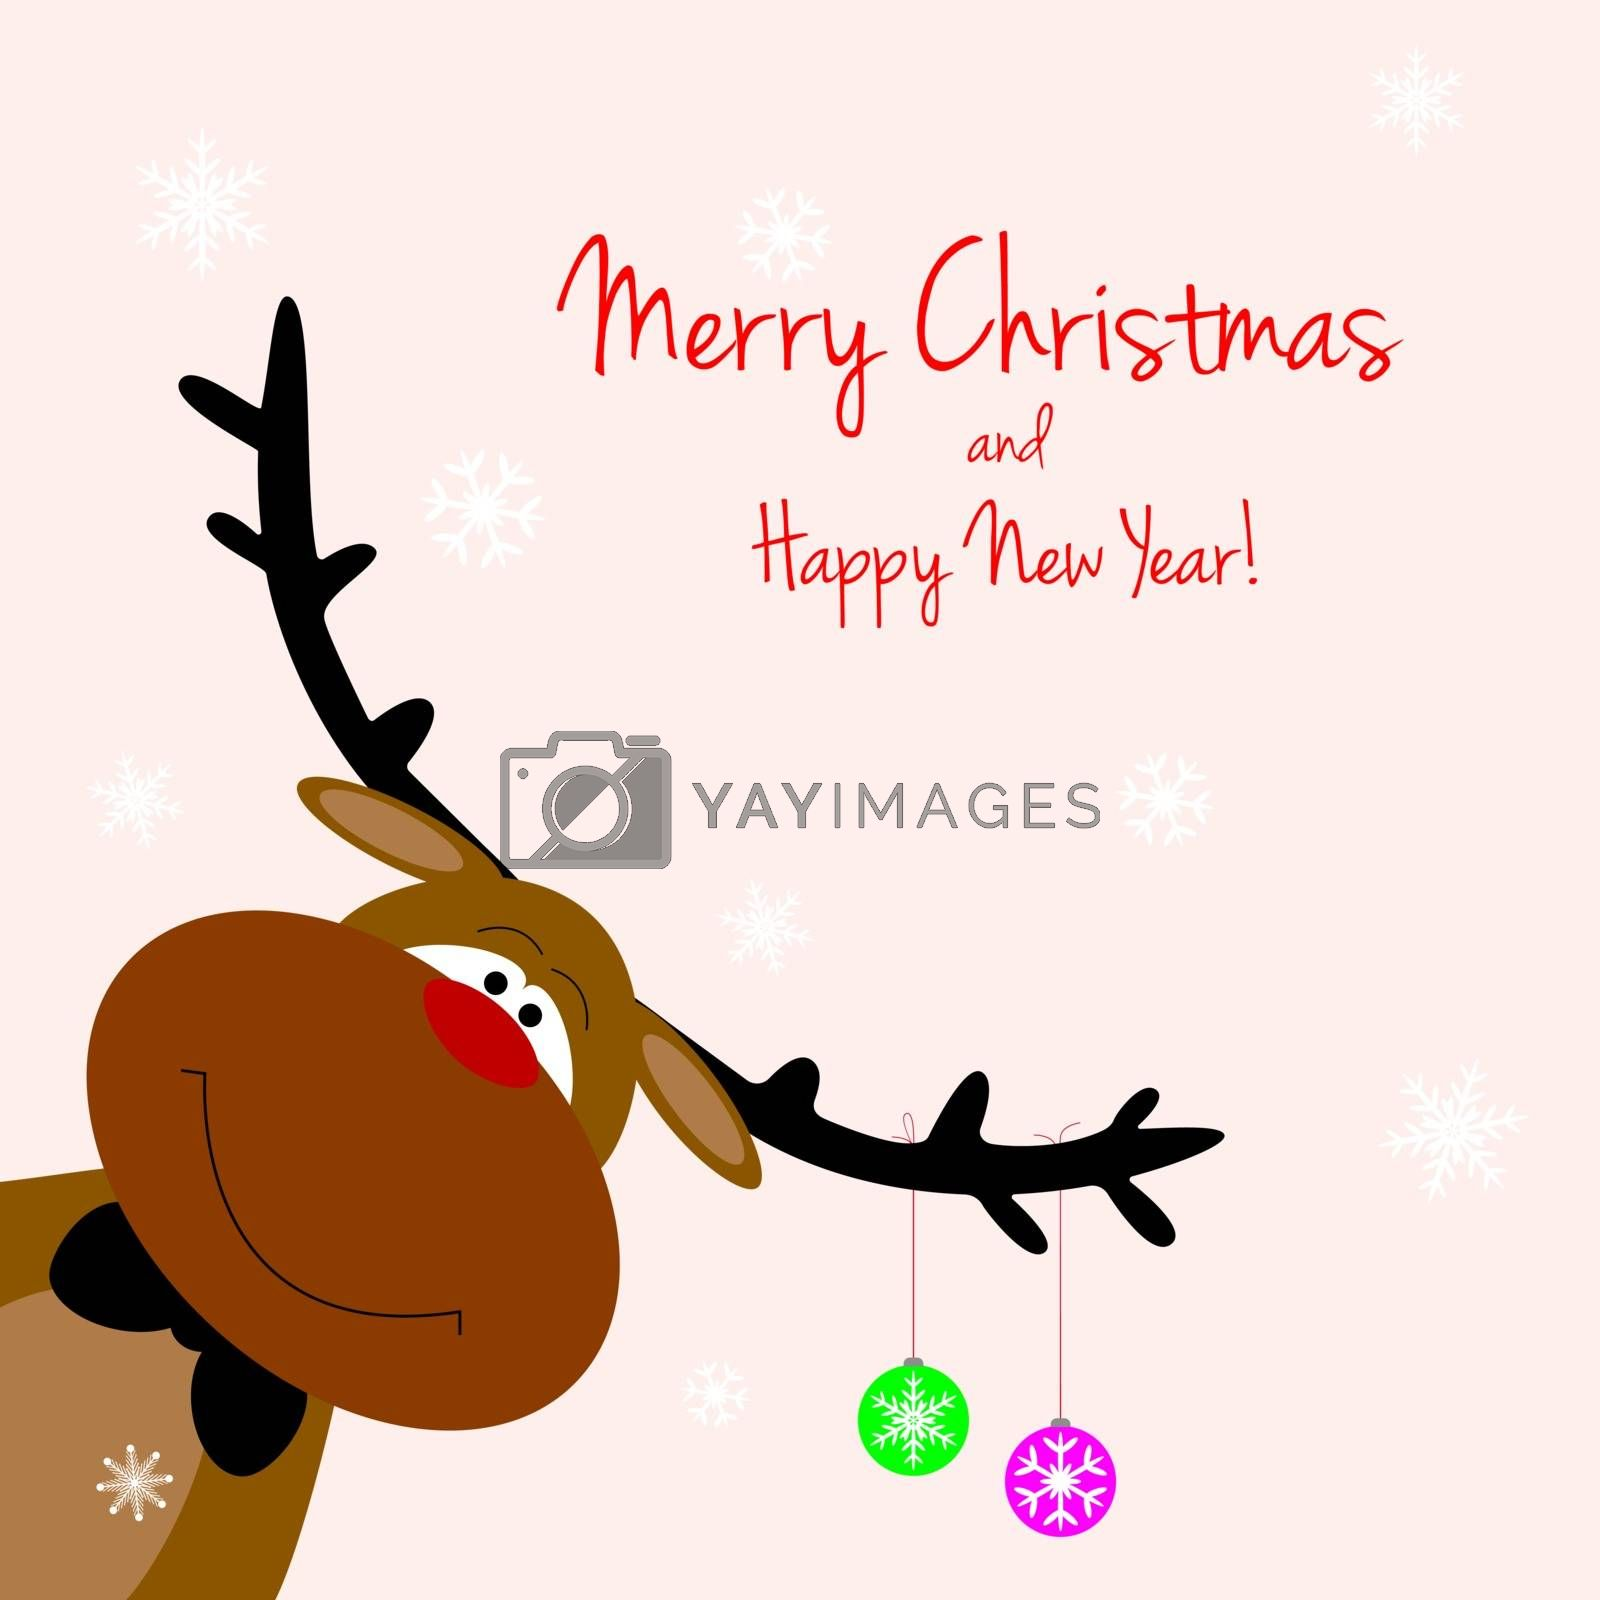 Cartoon reindeer on greeting cards with Christmas